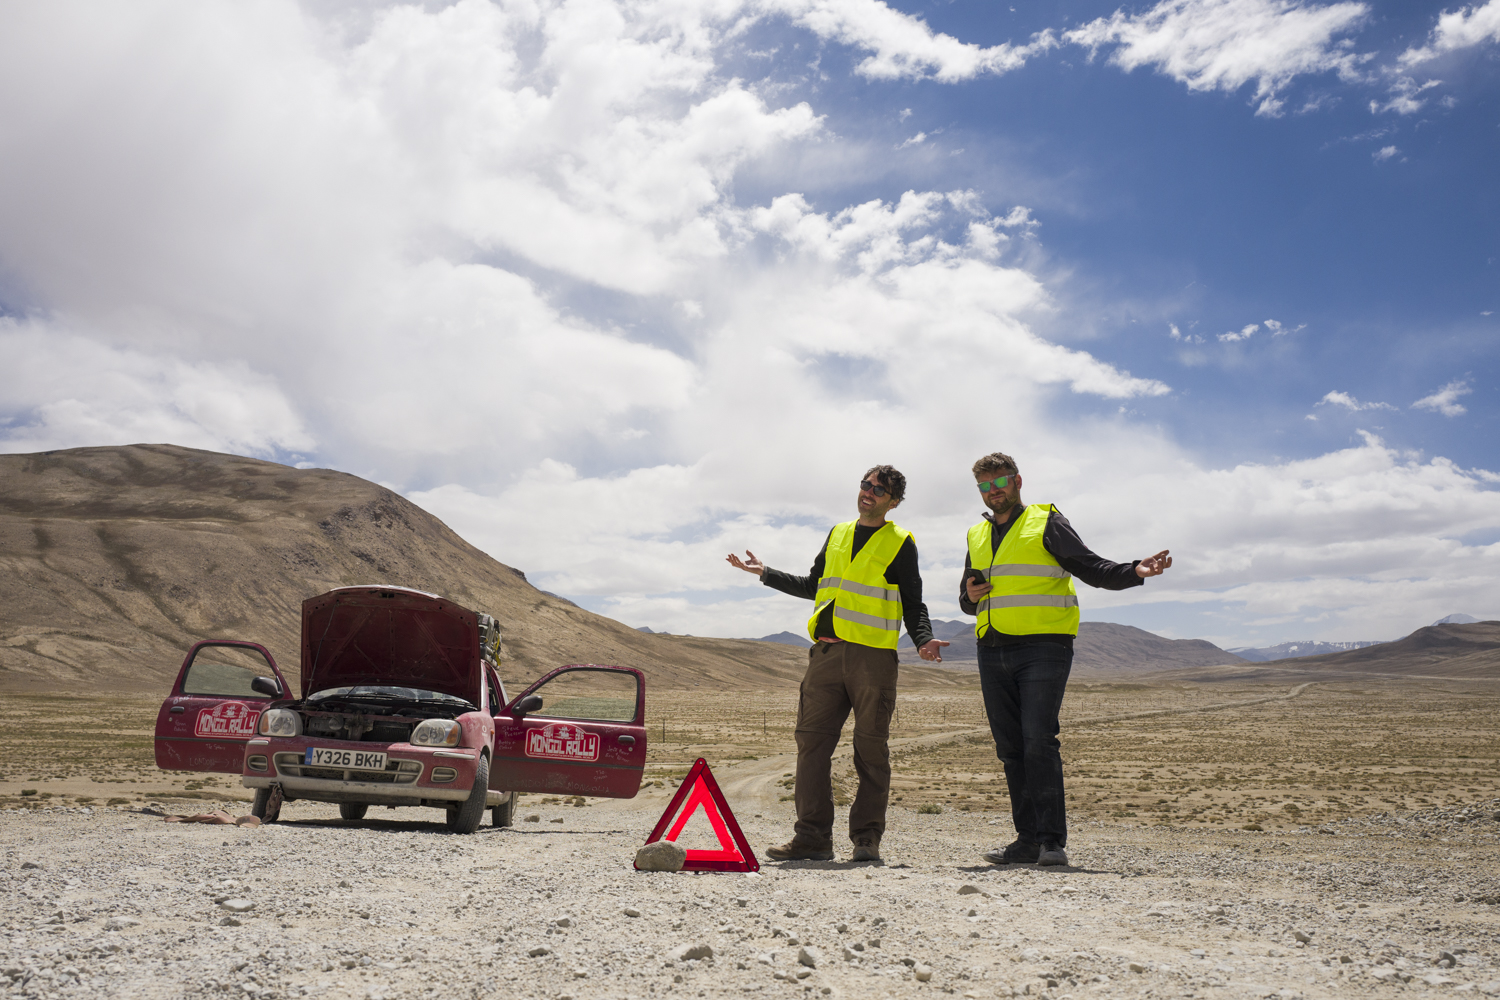 Broken down yet again in an extremely remote section of Tajikistan's Pamir Highway